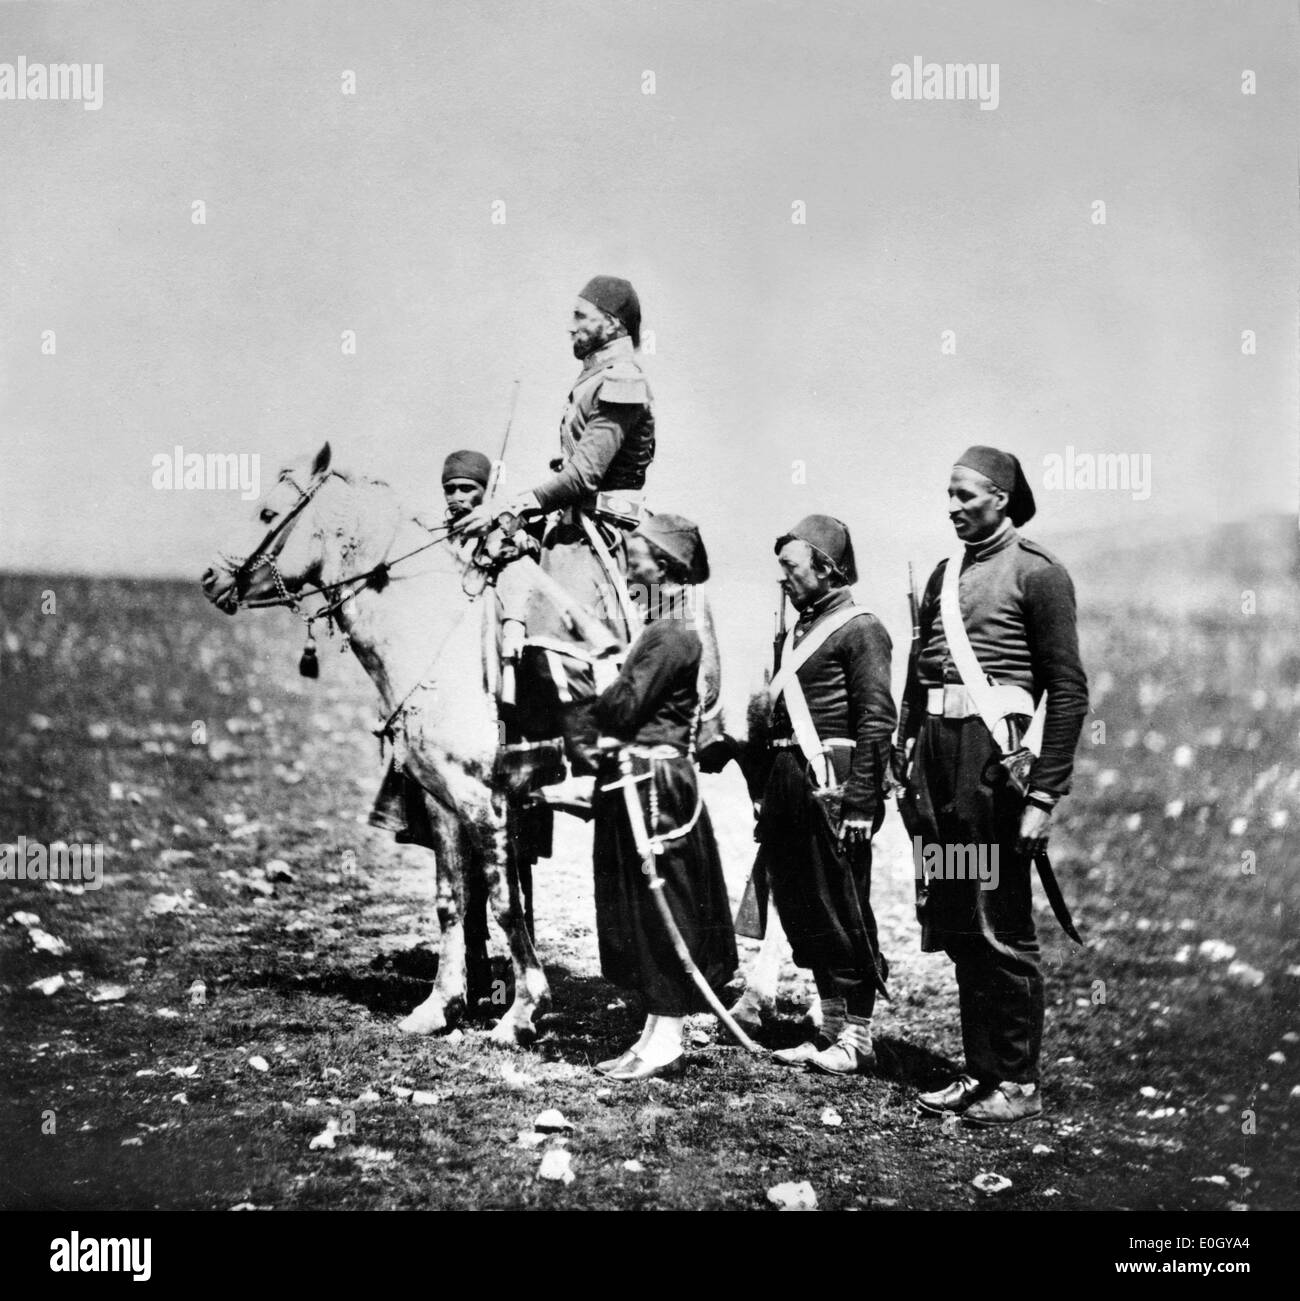 Dynastic successors of Egypt Ismail Pasha with military staff during Crimean War - Stock Image